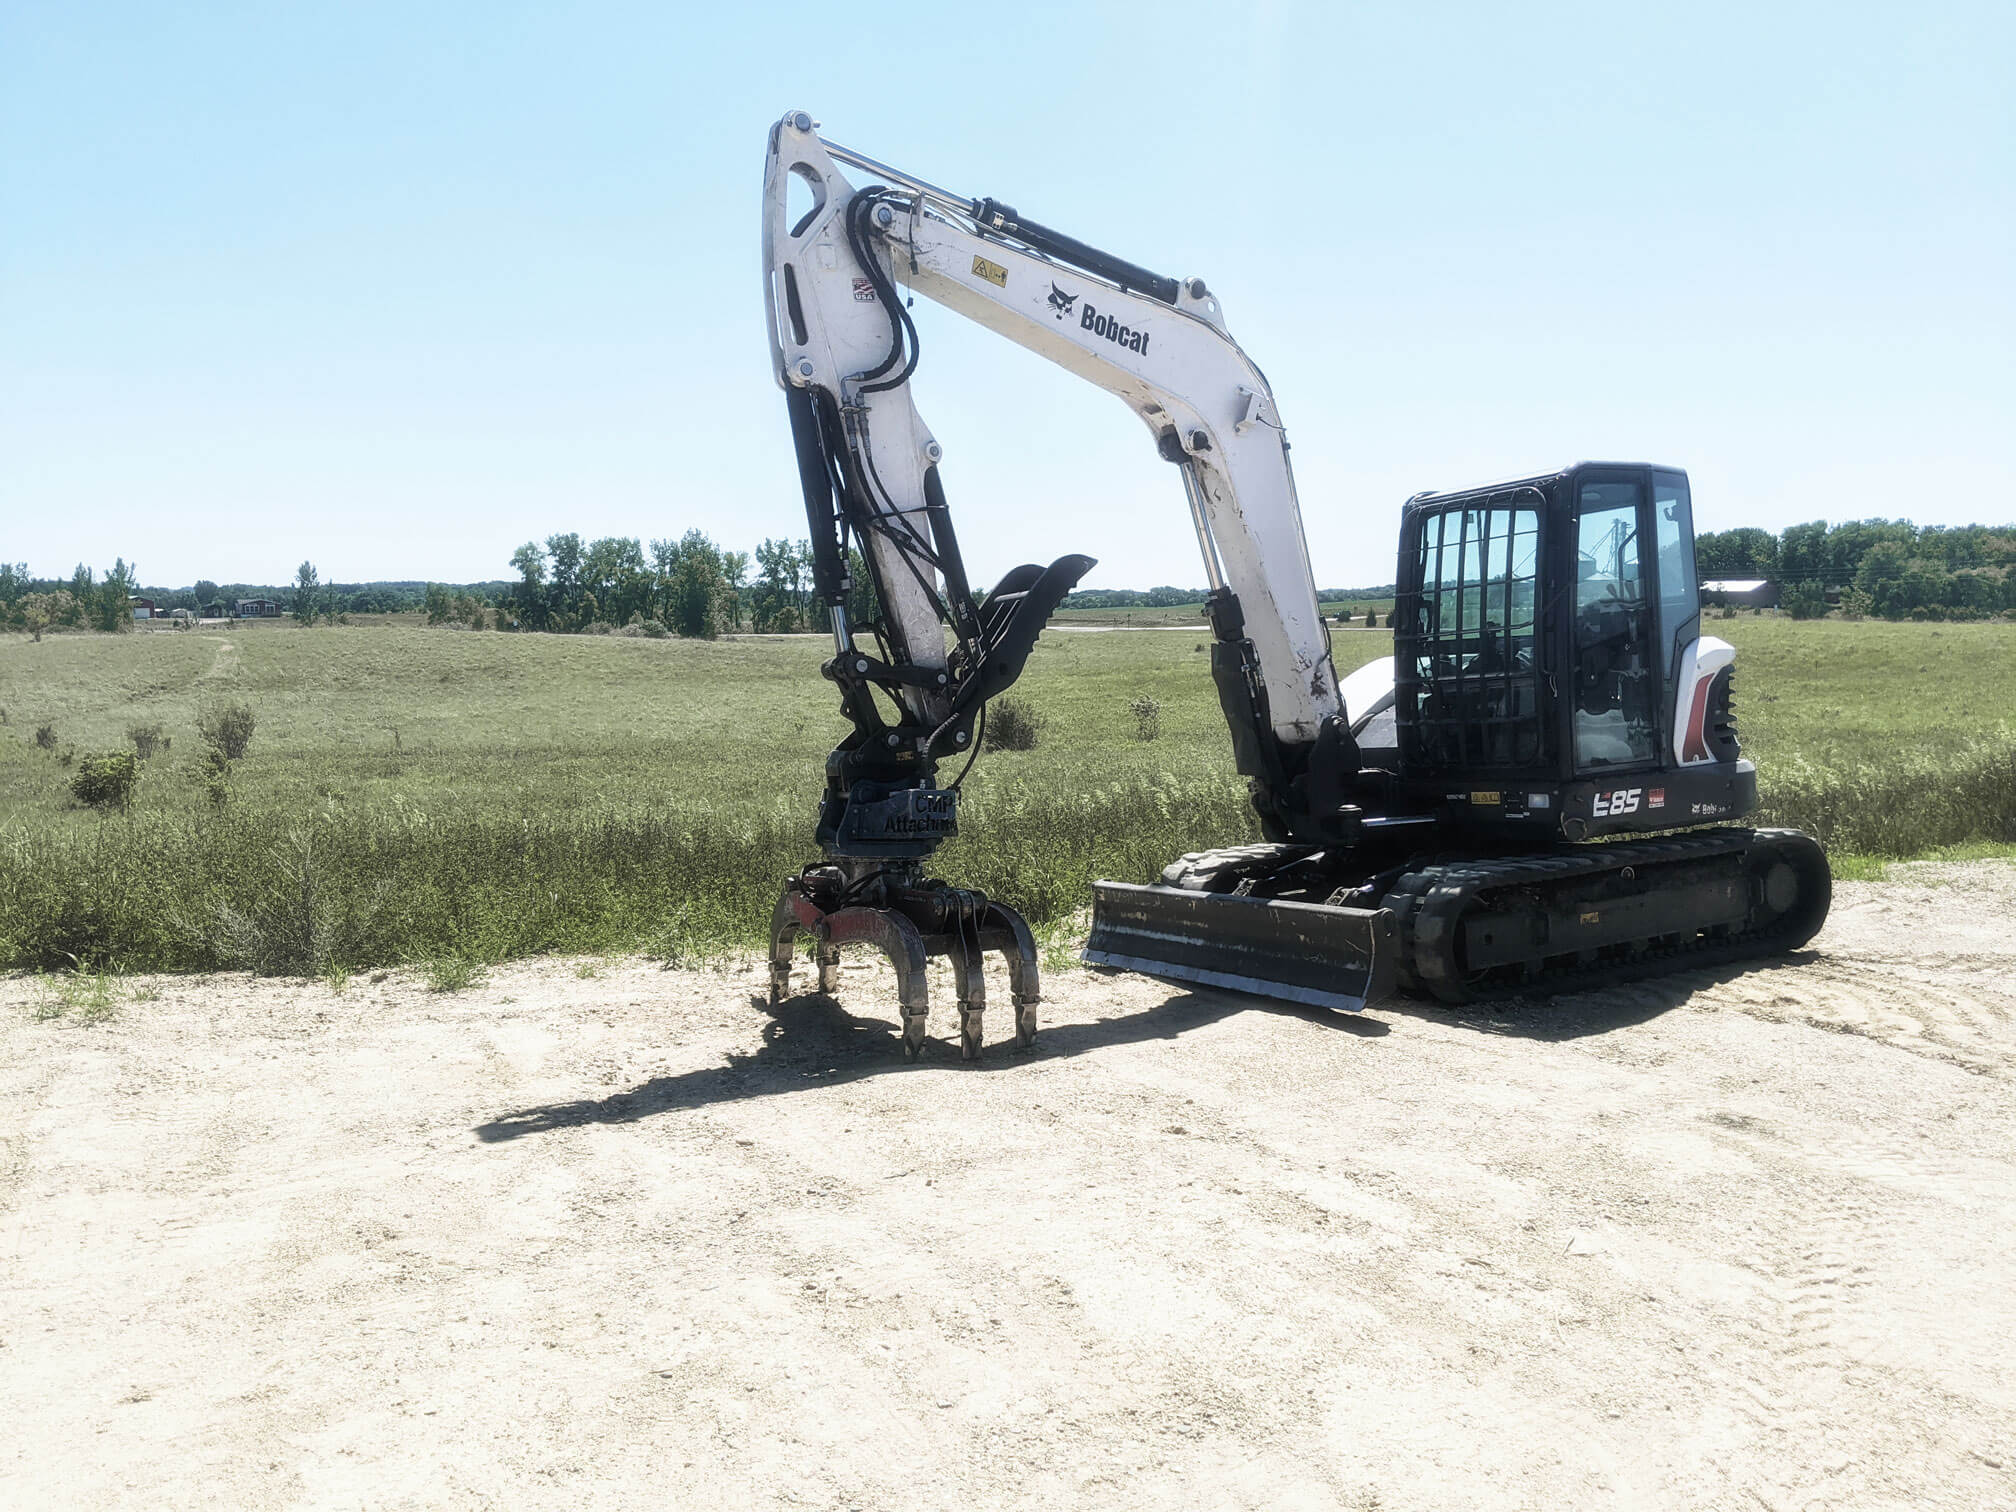 Excavator parked in empty lot. TreeStory has all of the commercial equipment to service any industry & tree removal needs